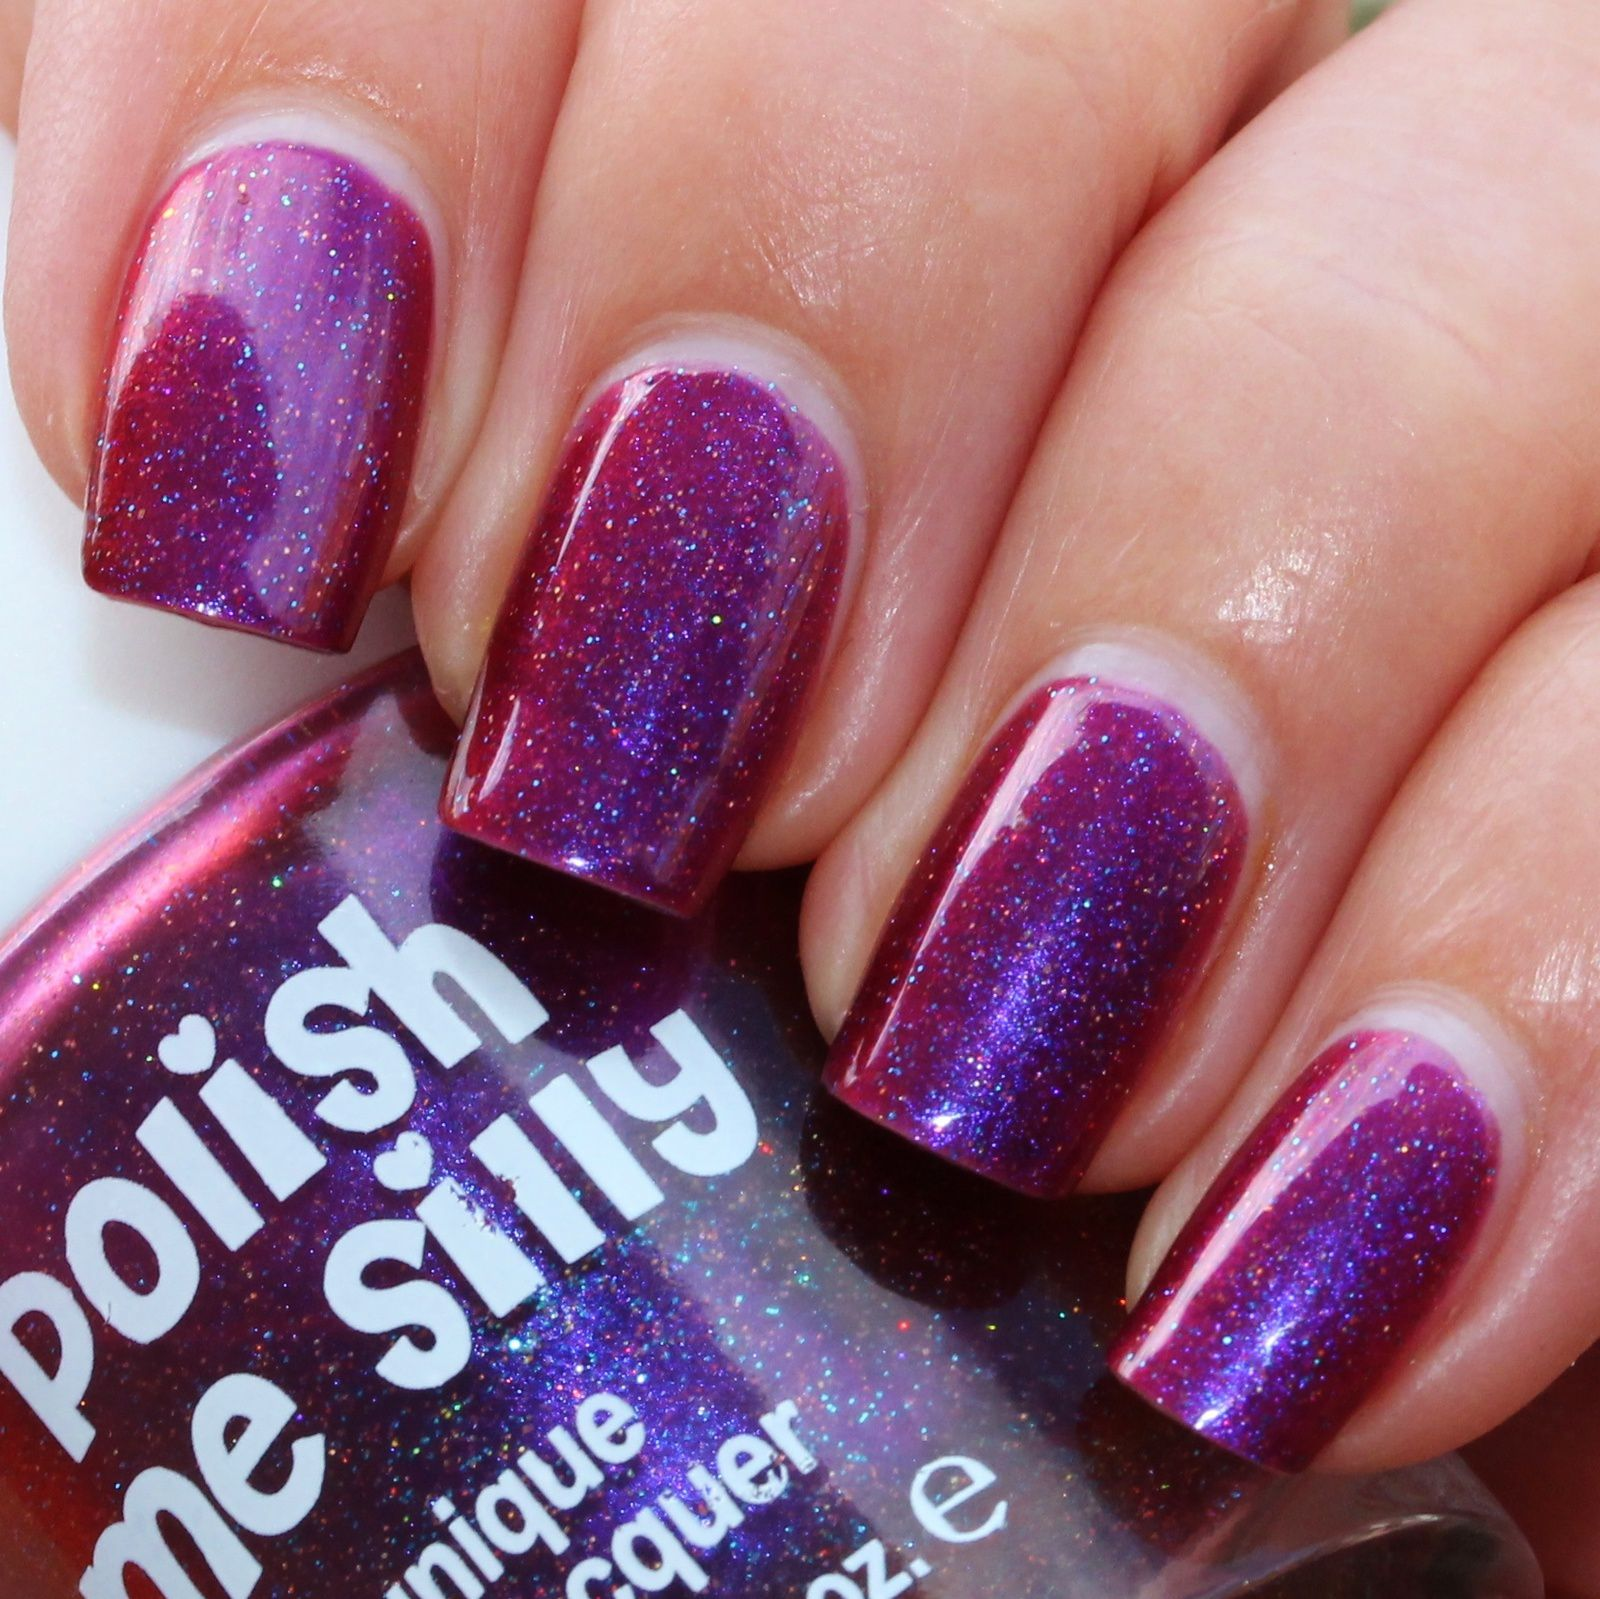 Essie Proteined Base Coat / Polish Me Silly Cosmic Kisses / Poshe Top Coat